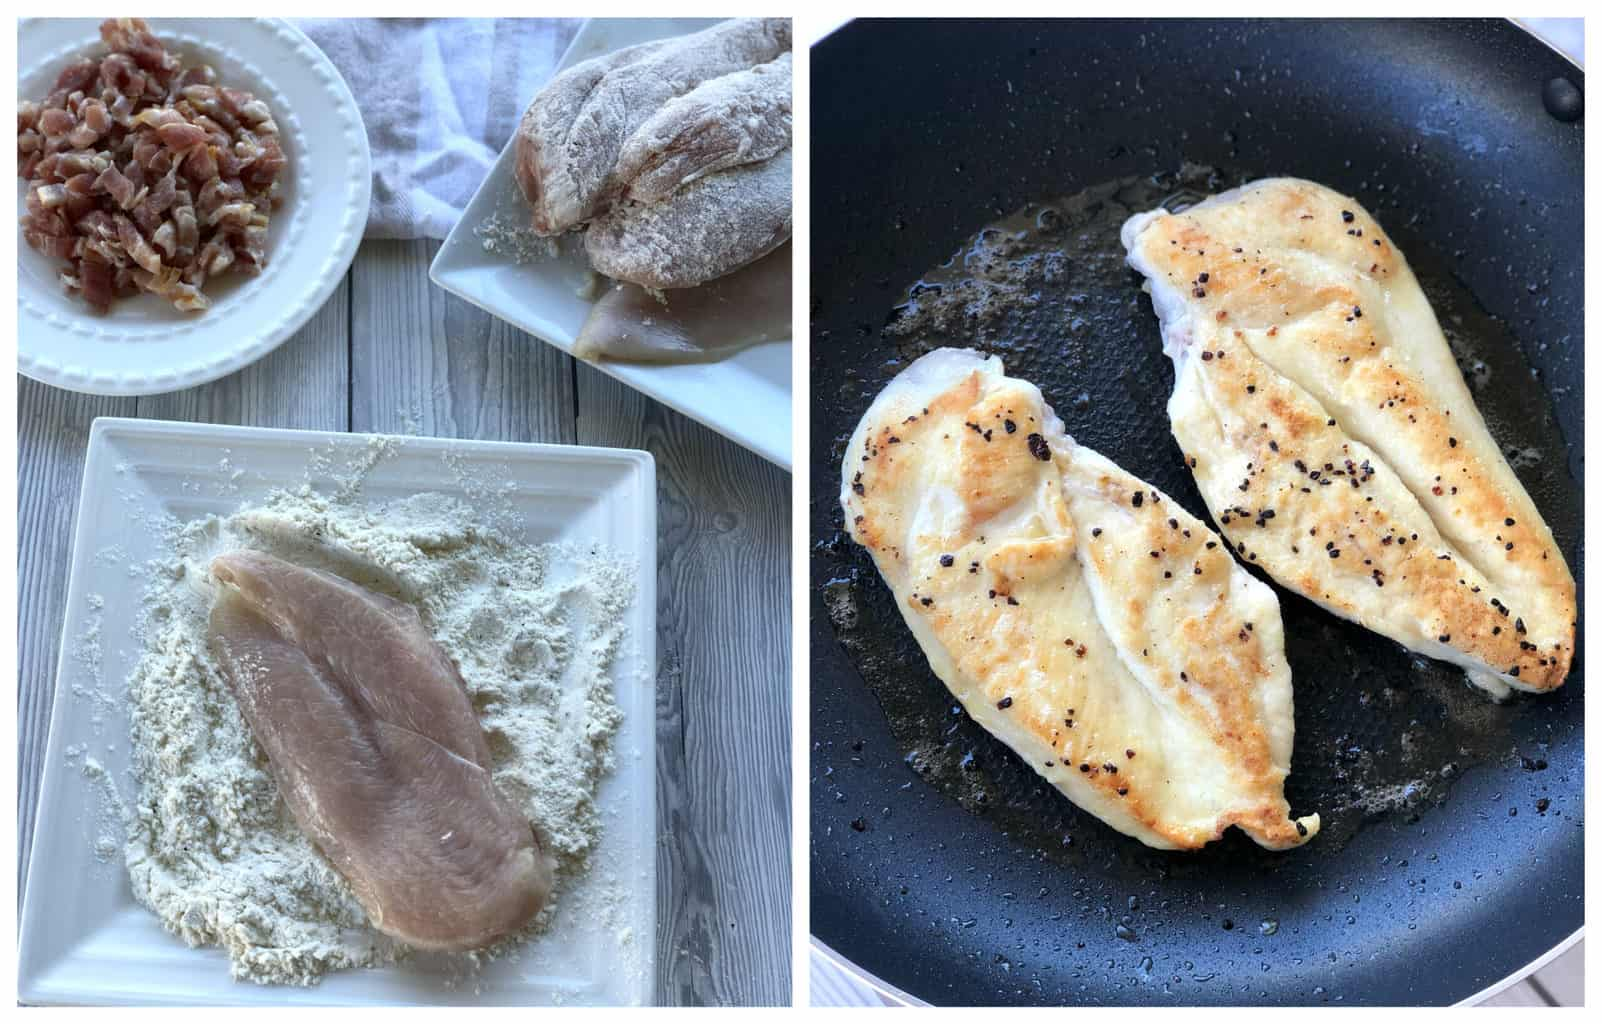 Images showing how to flour the chicken and pan fry